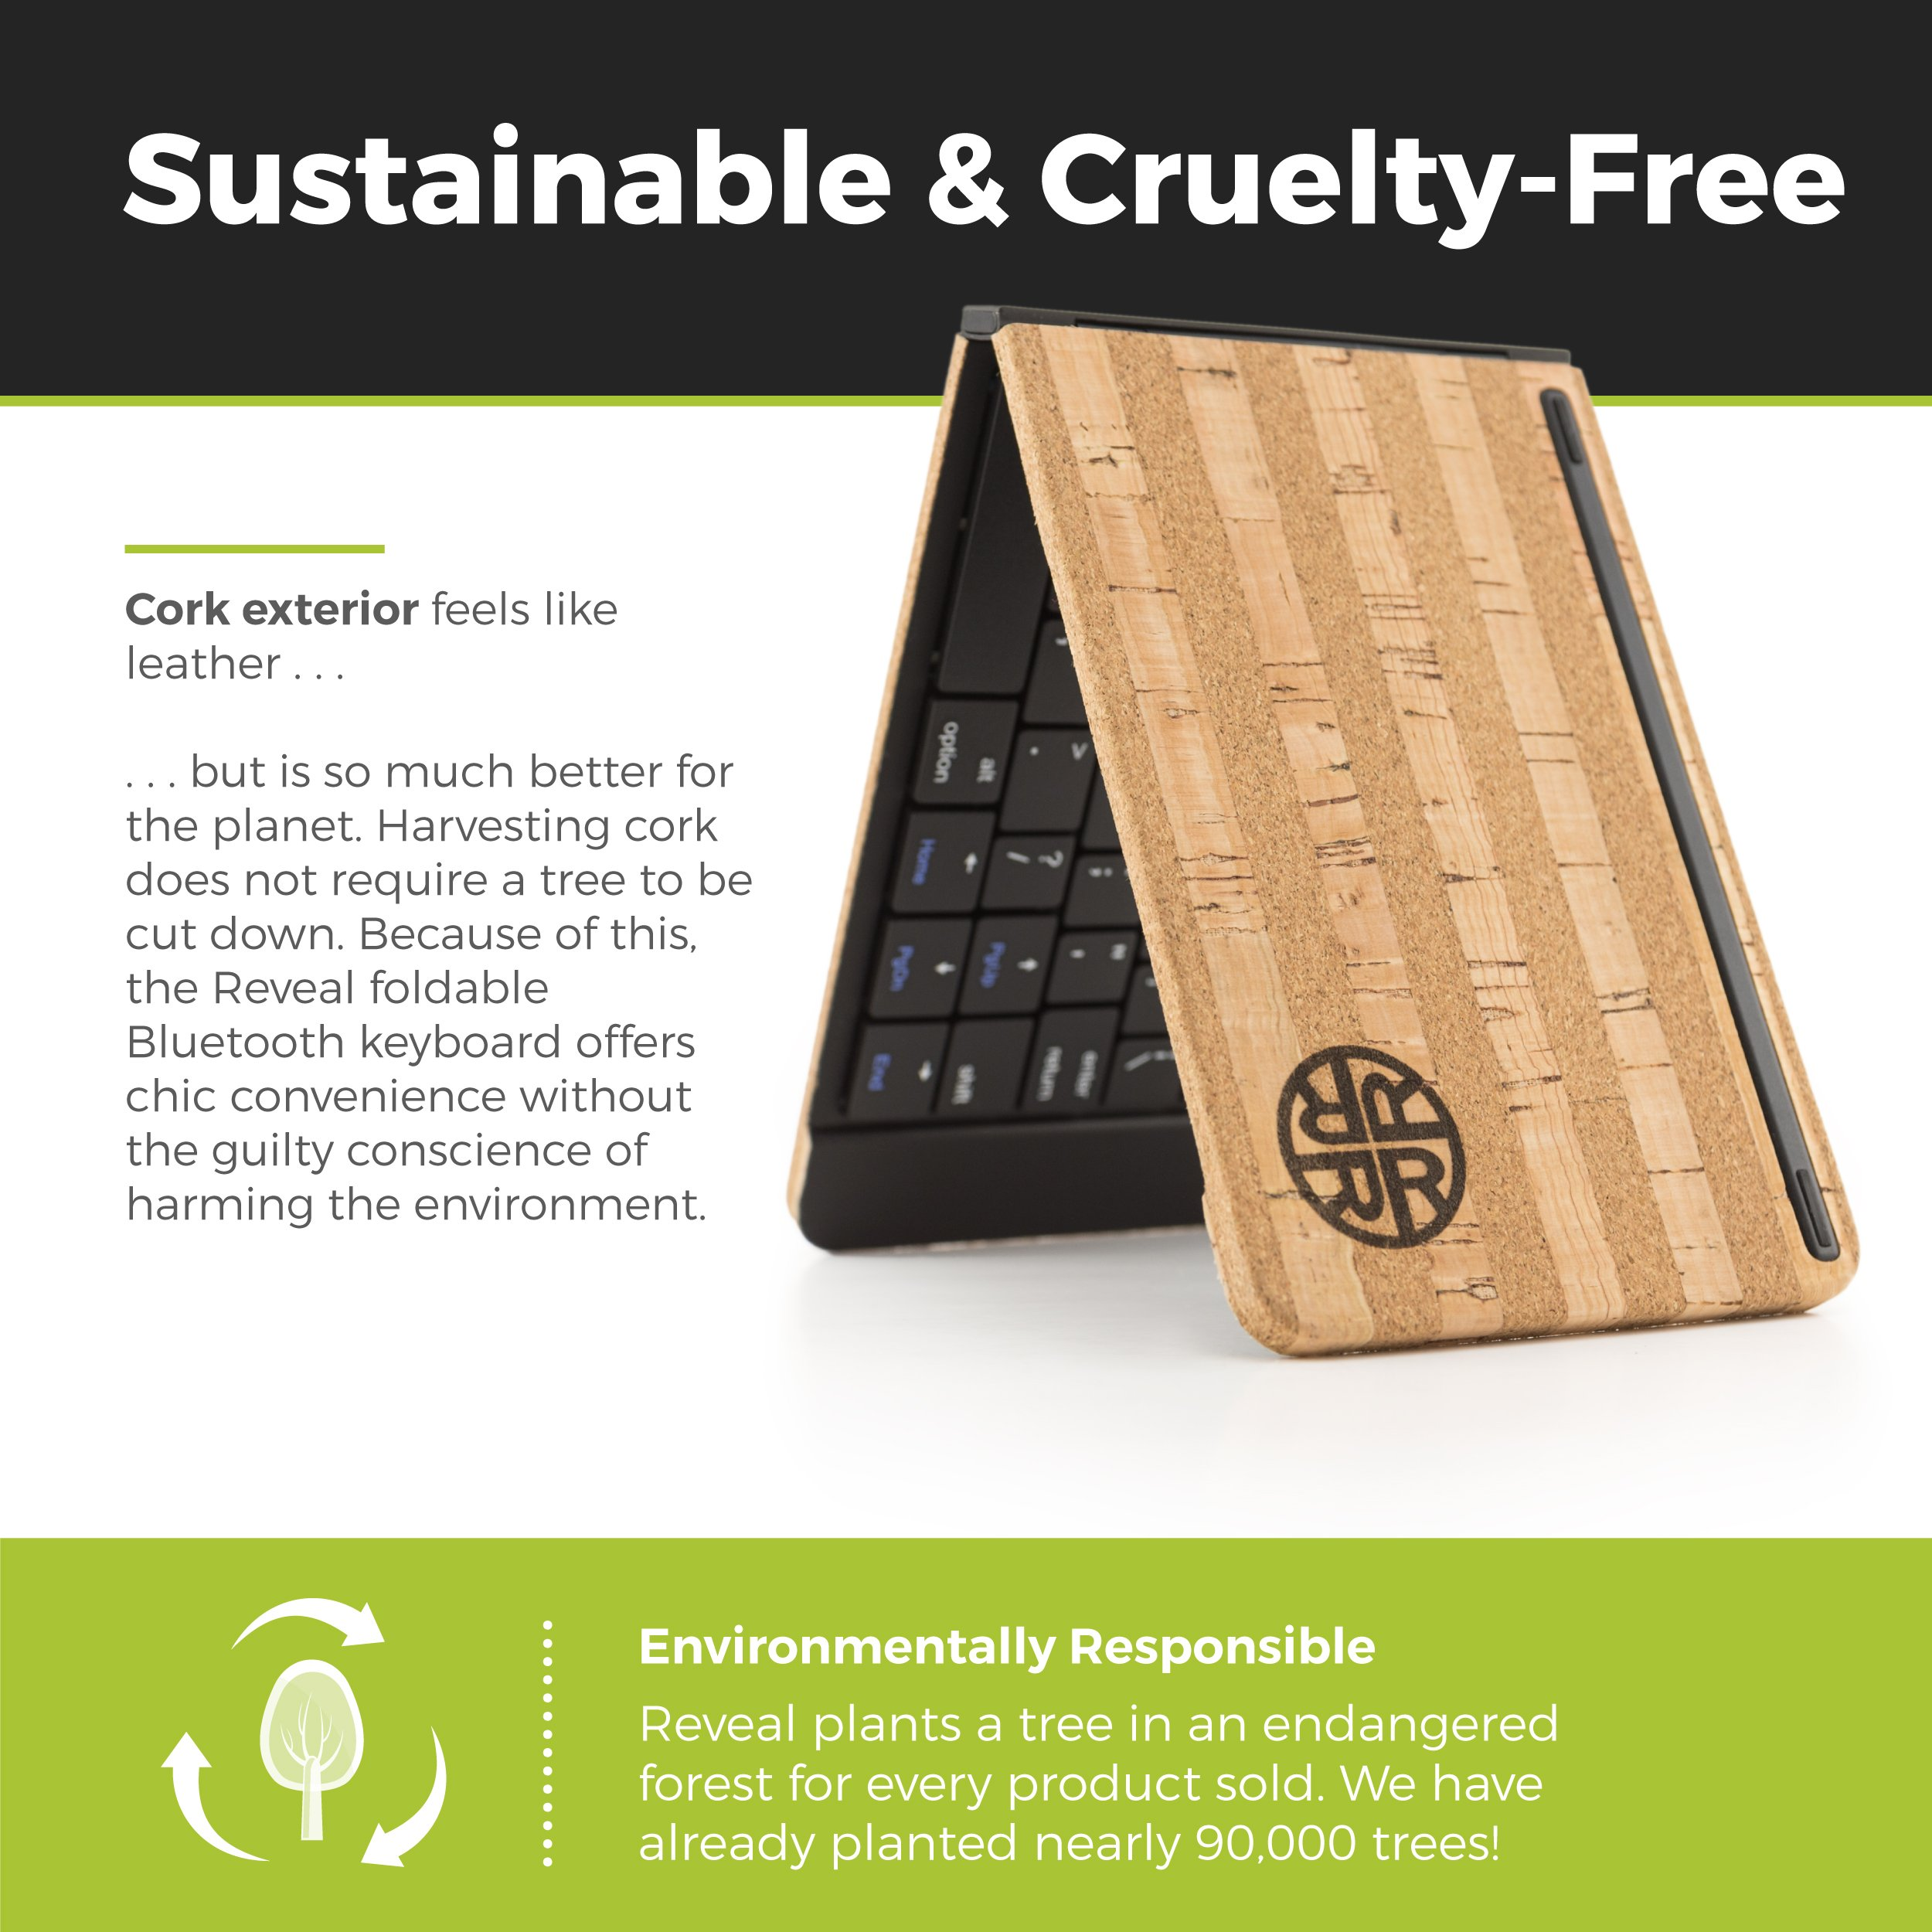 Foldable Bluetooth Keyboard by Reveal Shop - Natural Cork Leather Exterior - for iPhone, iPad, Android devices, Windows tablet, PC & MAC Computers - 30 hour battery life (Cork) by Reveal (Image #6)